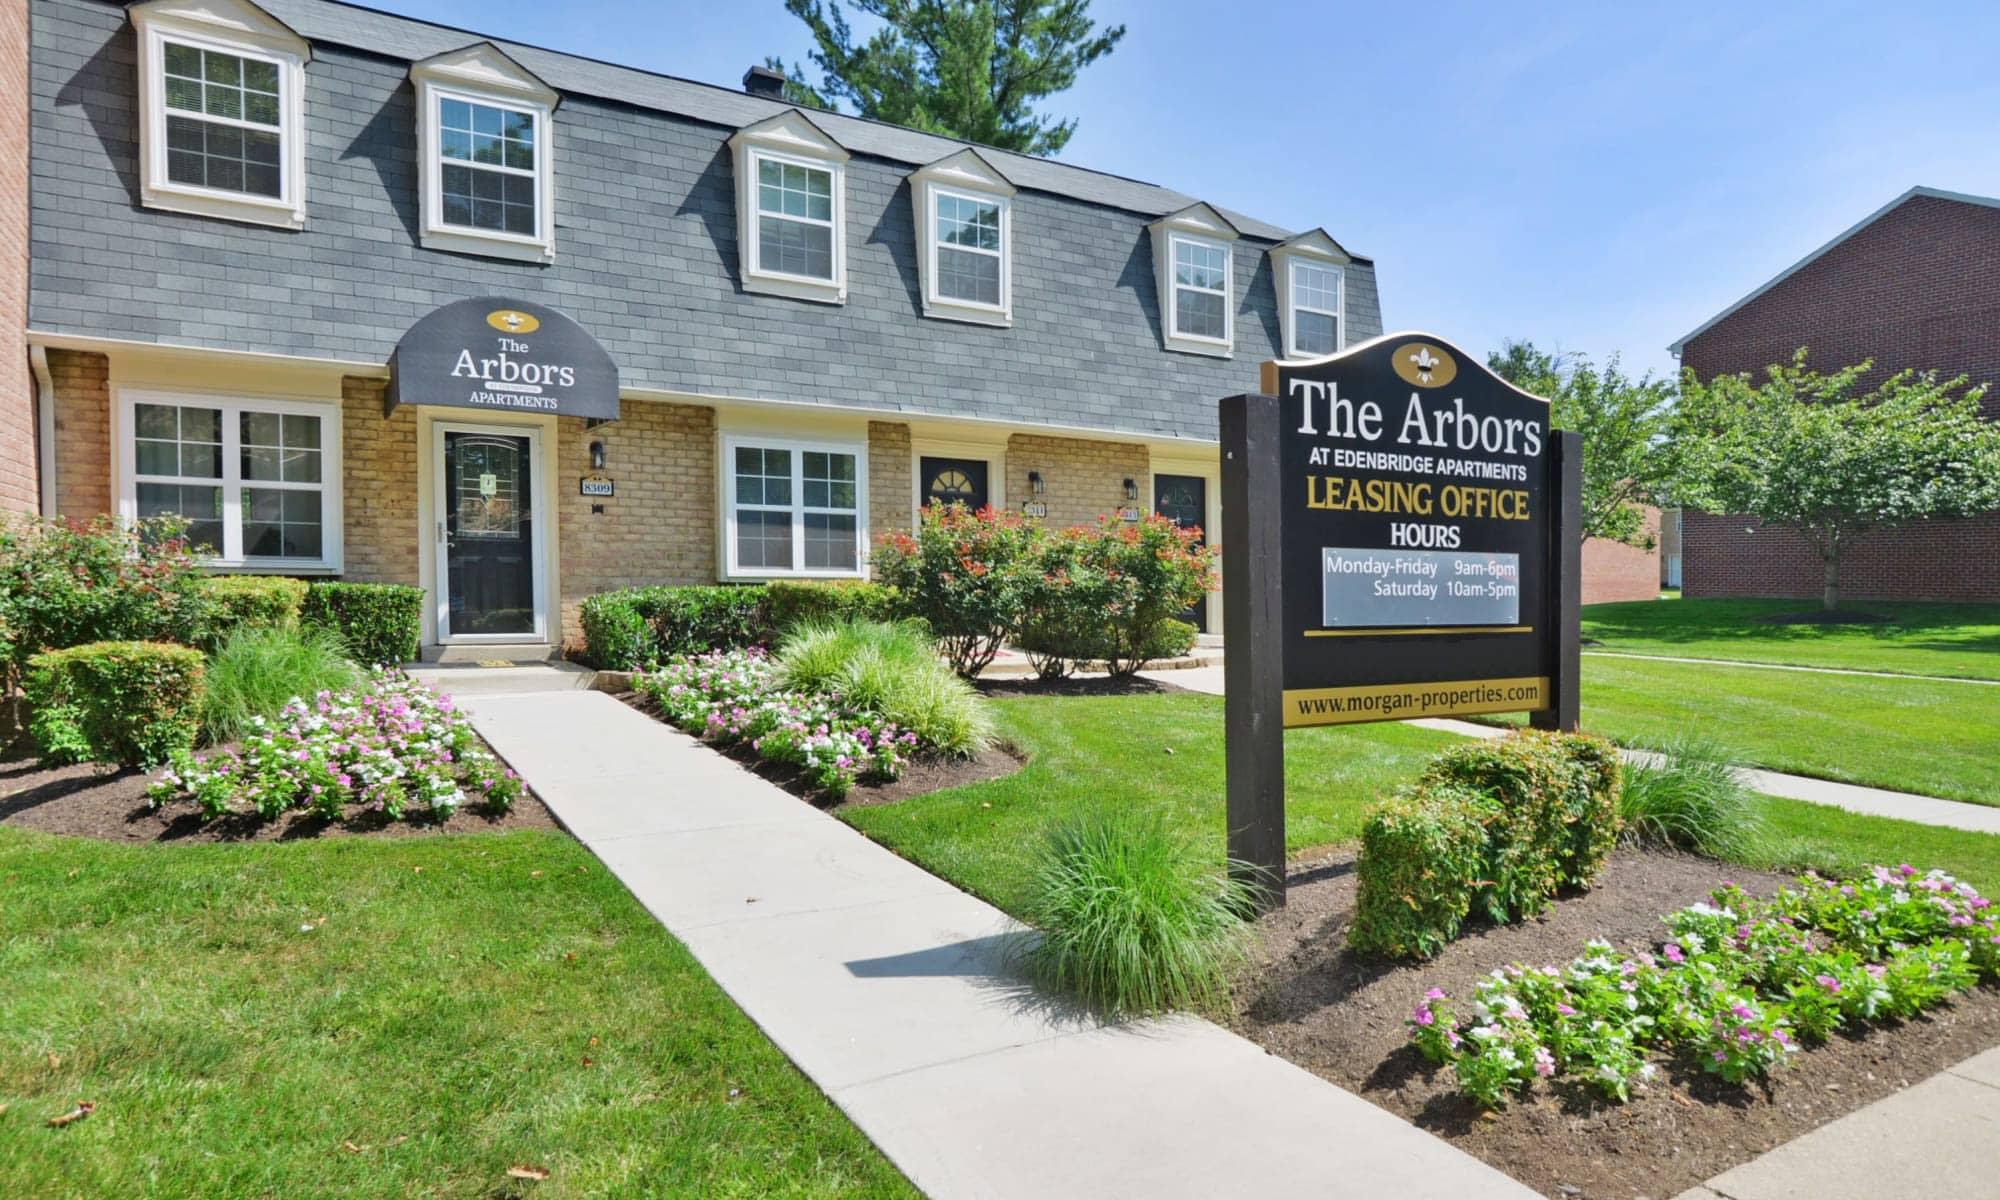 Leasing office at Arbors at Edenbridge Apartments & Townhomes in Parkville, MD